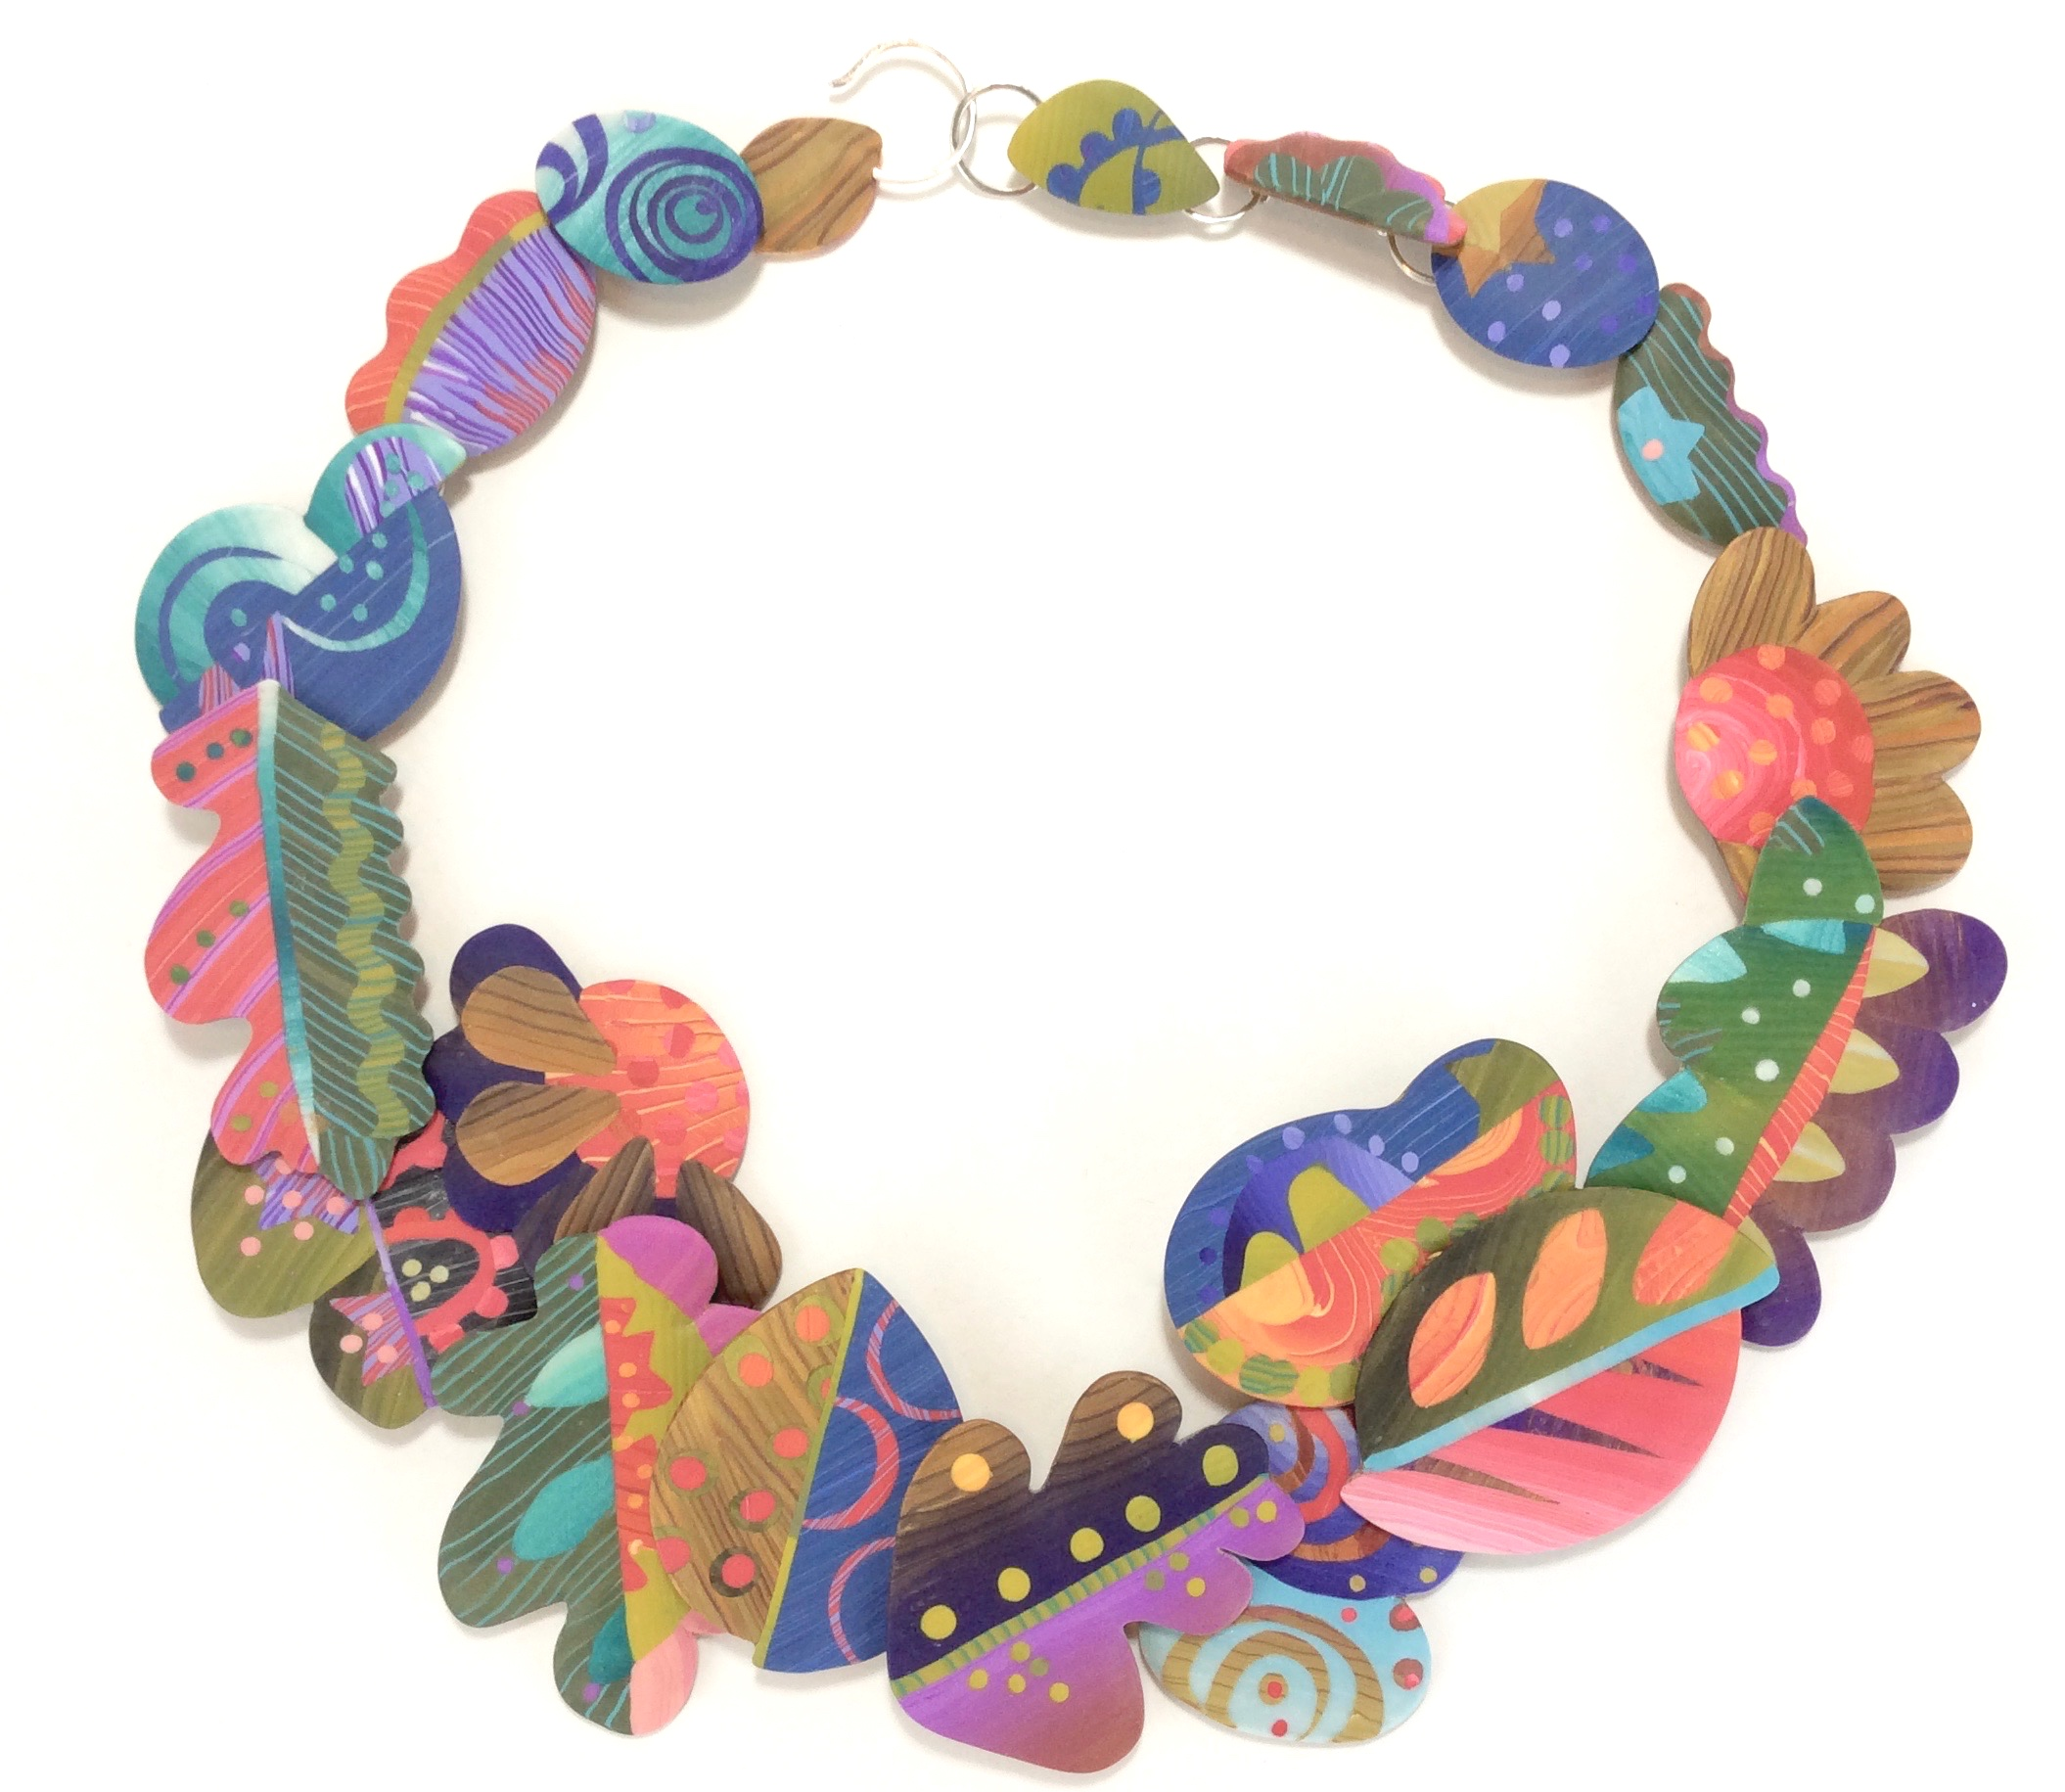 Plenty/Autumn Necklace  polymer clay millefiori marquetry, nickel silver and sterling silver  21.5 L x 1.5 w x 1/4 D  2018